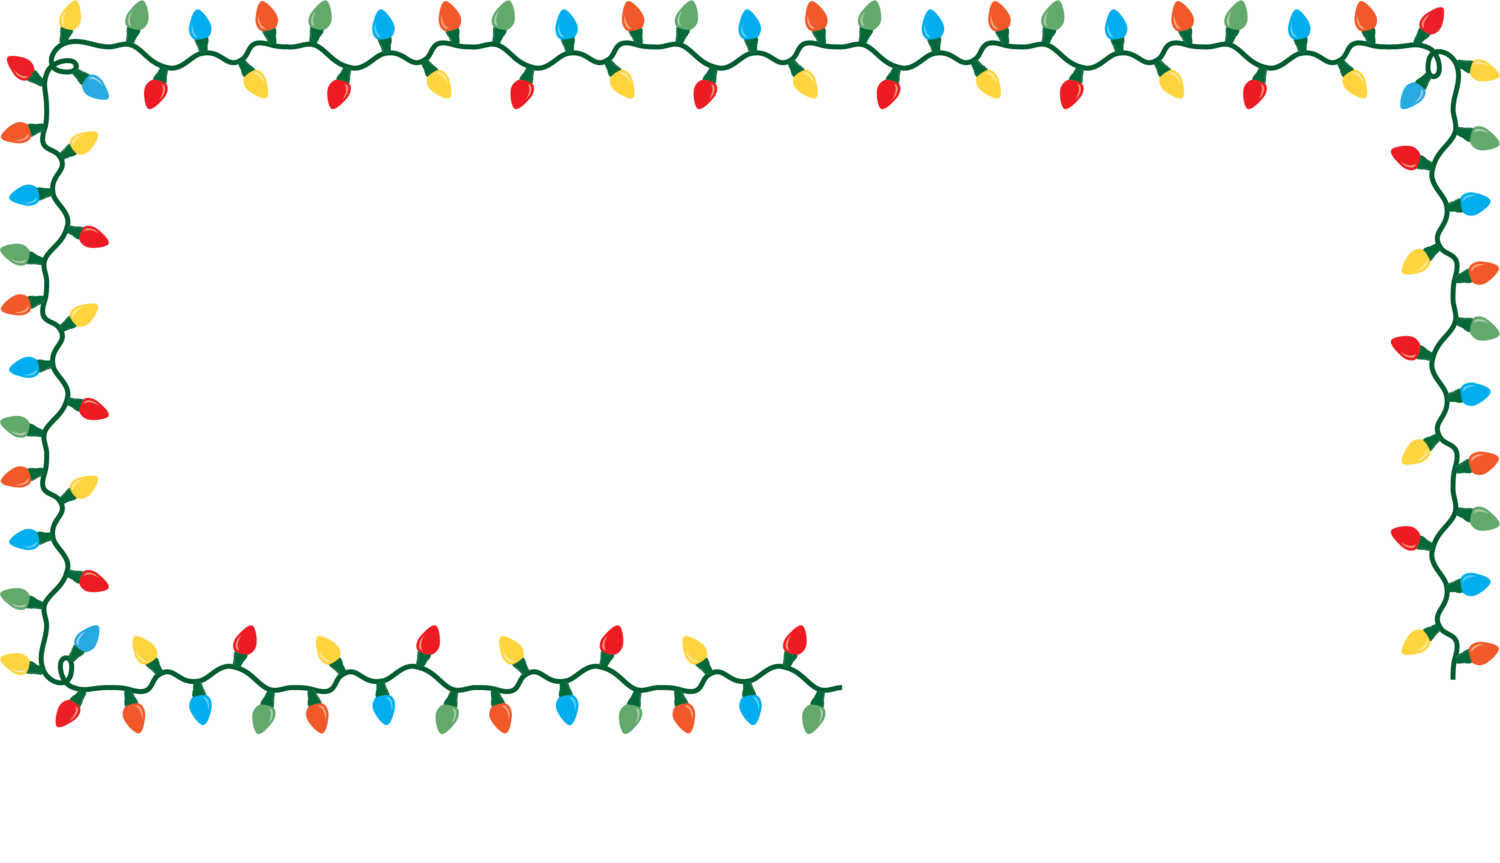 Cinema Impero Multisala